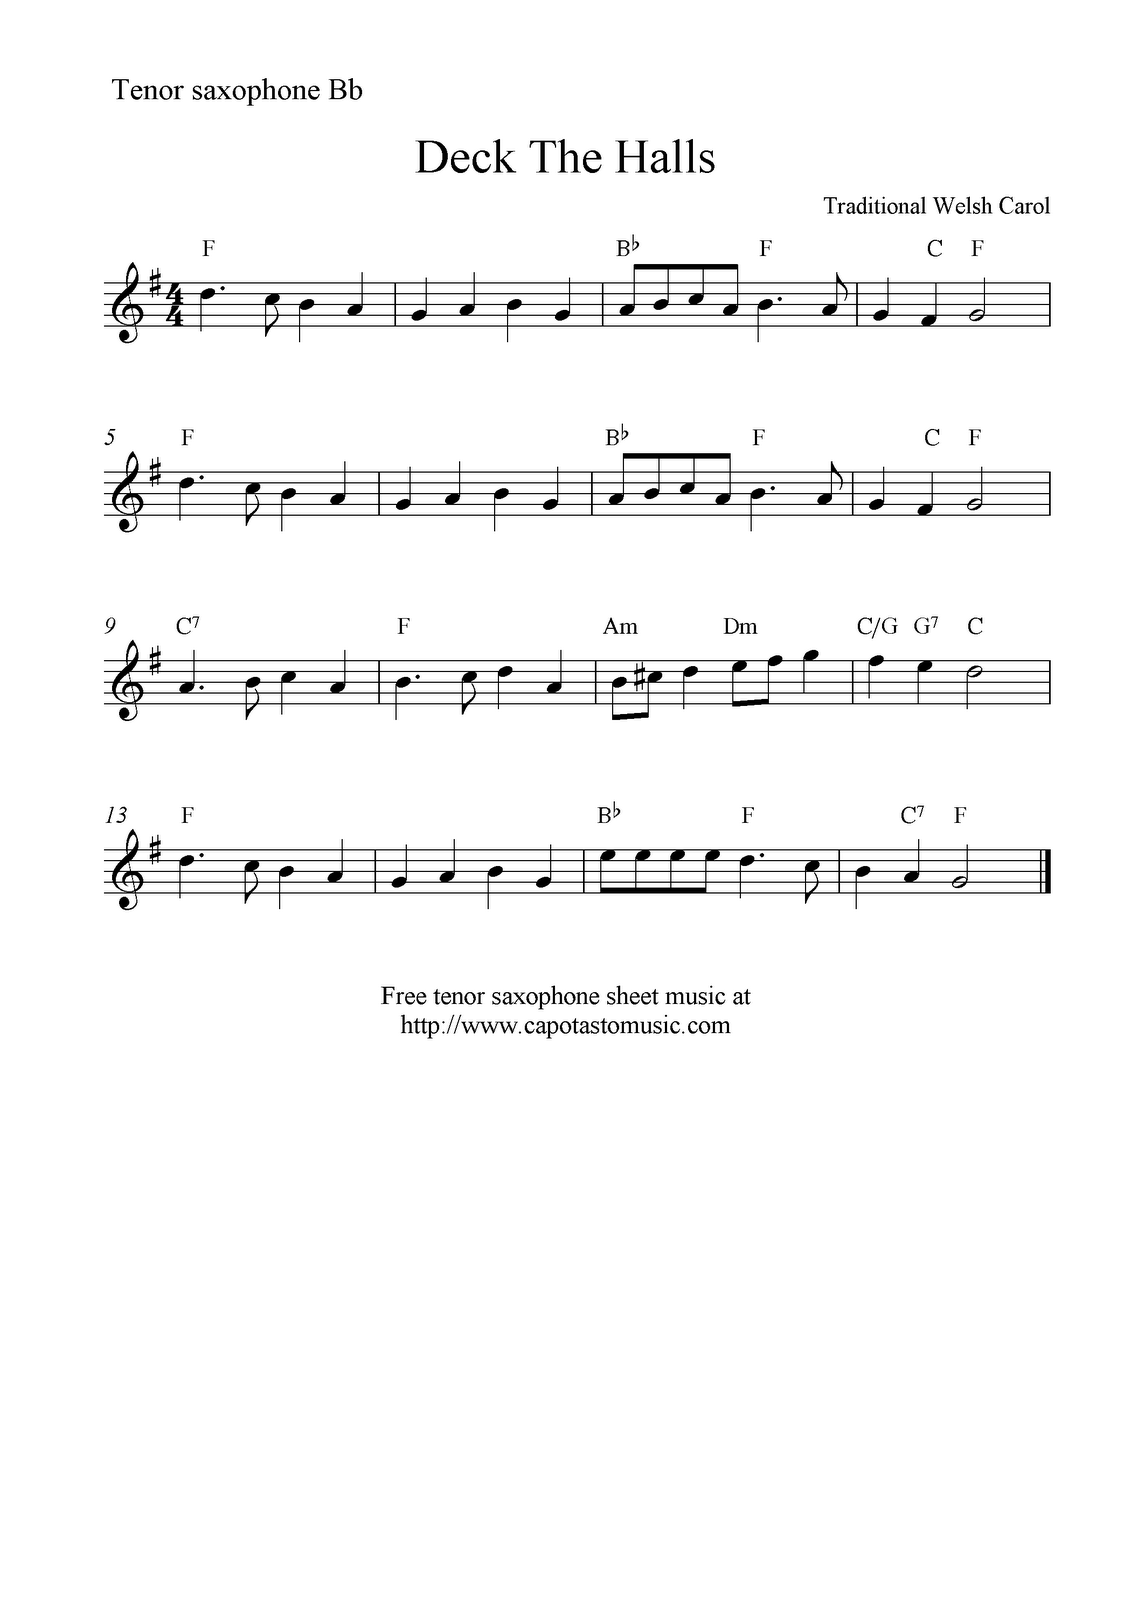 deck the halls tenor saxophone sheet music